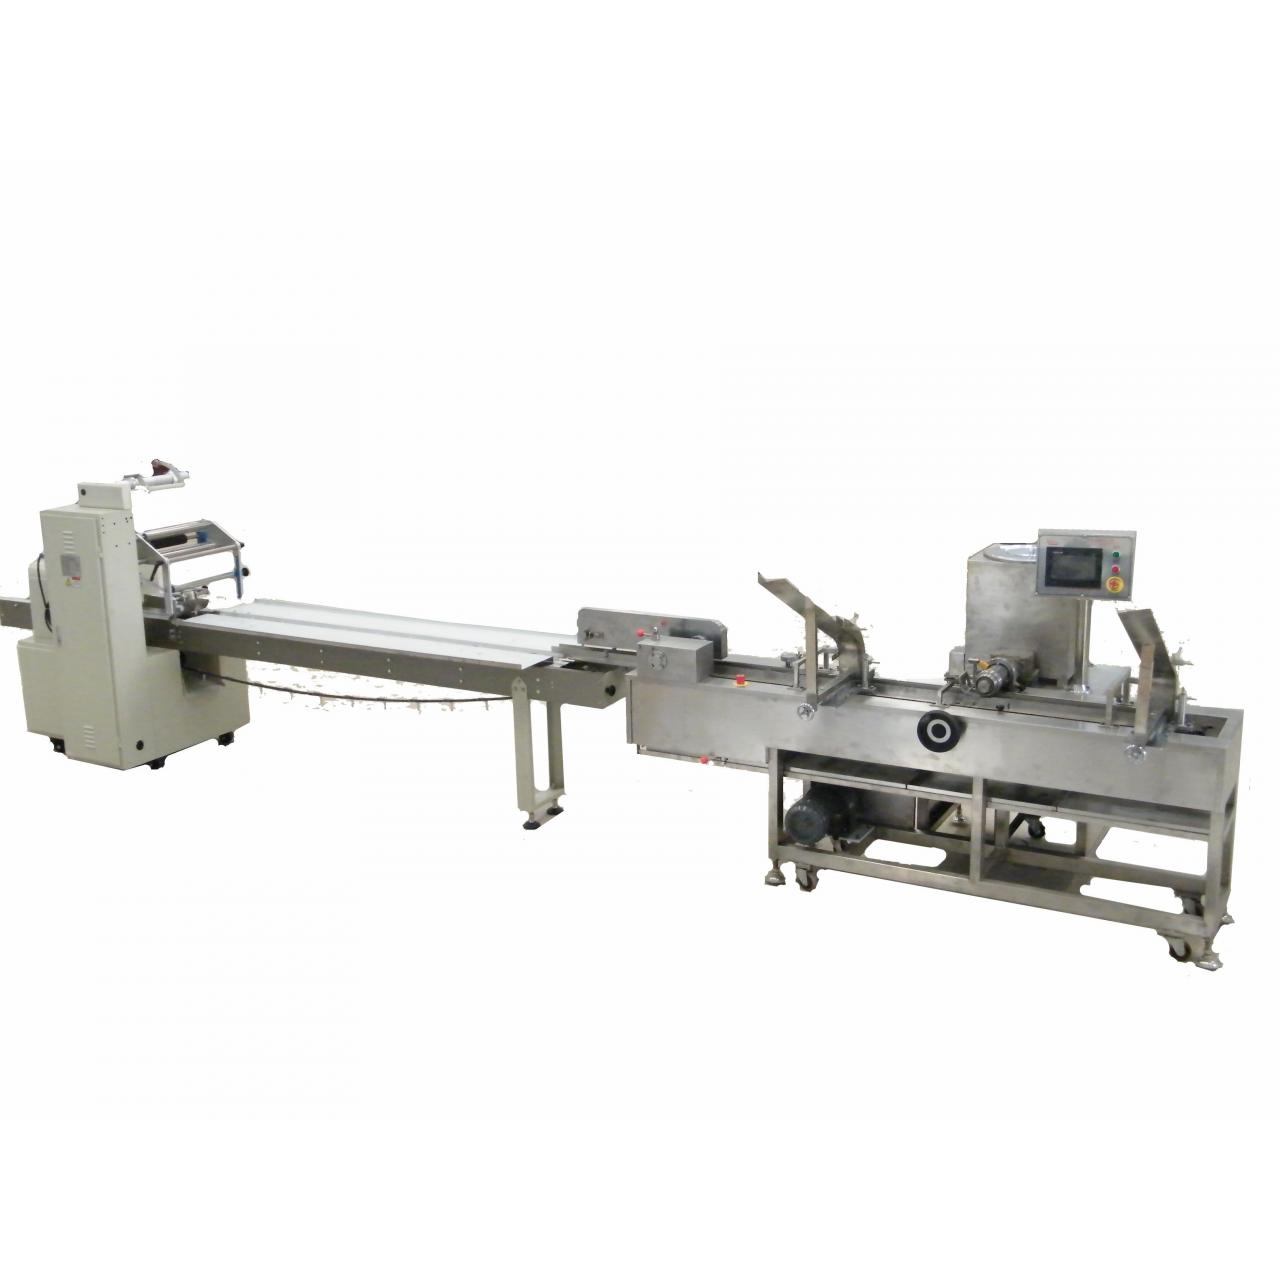 Biscuit sandwiching machine Manufactures